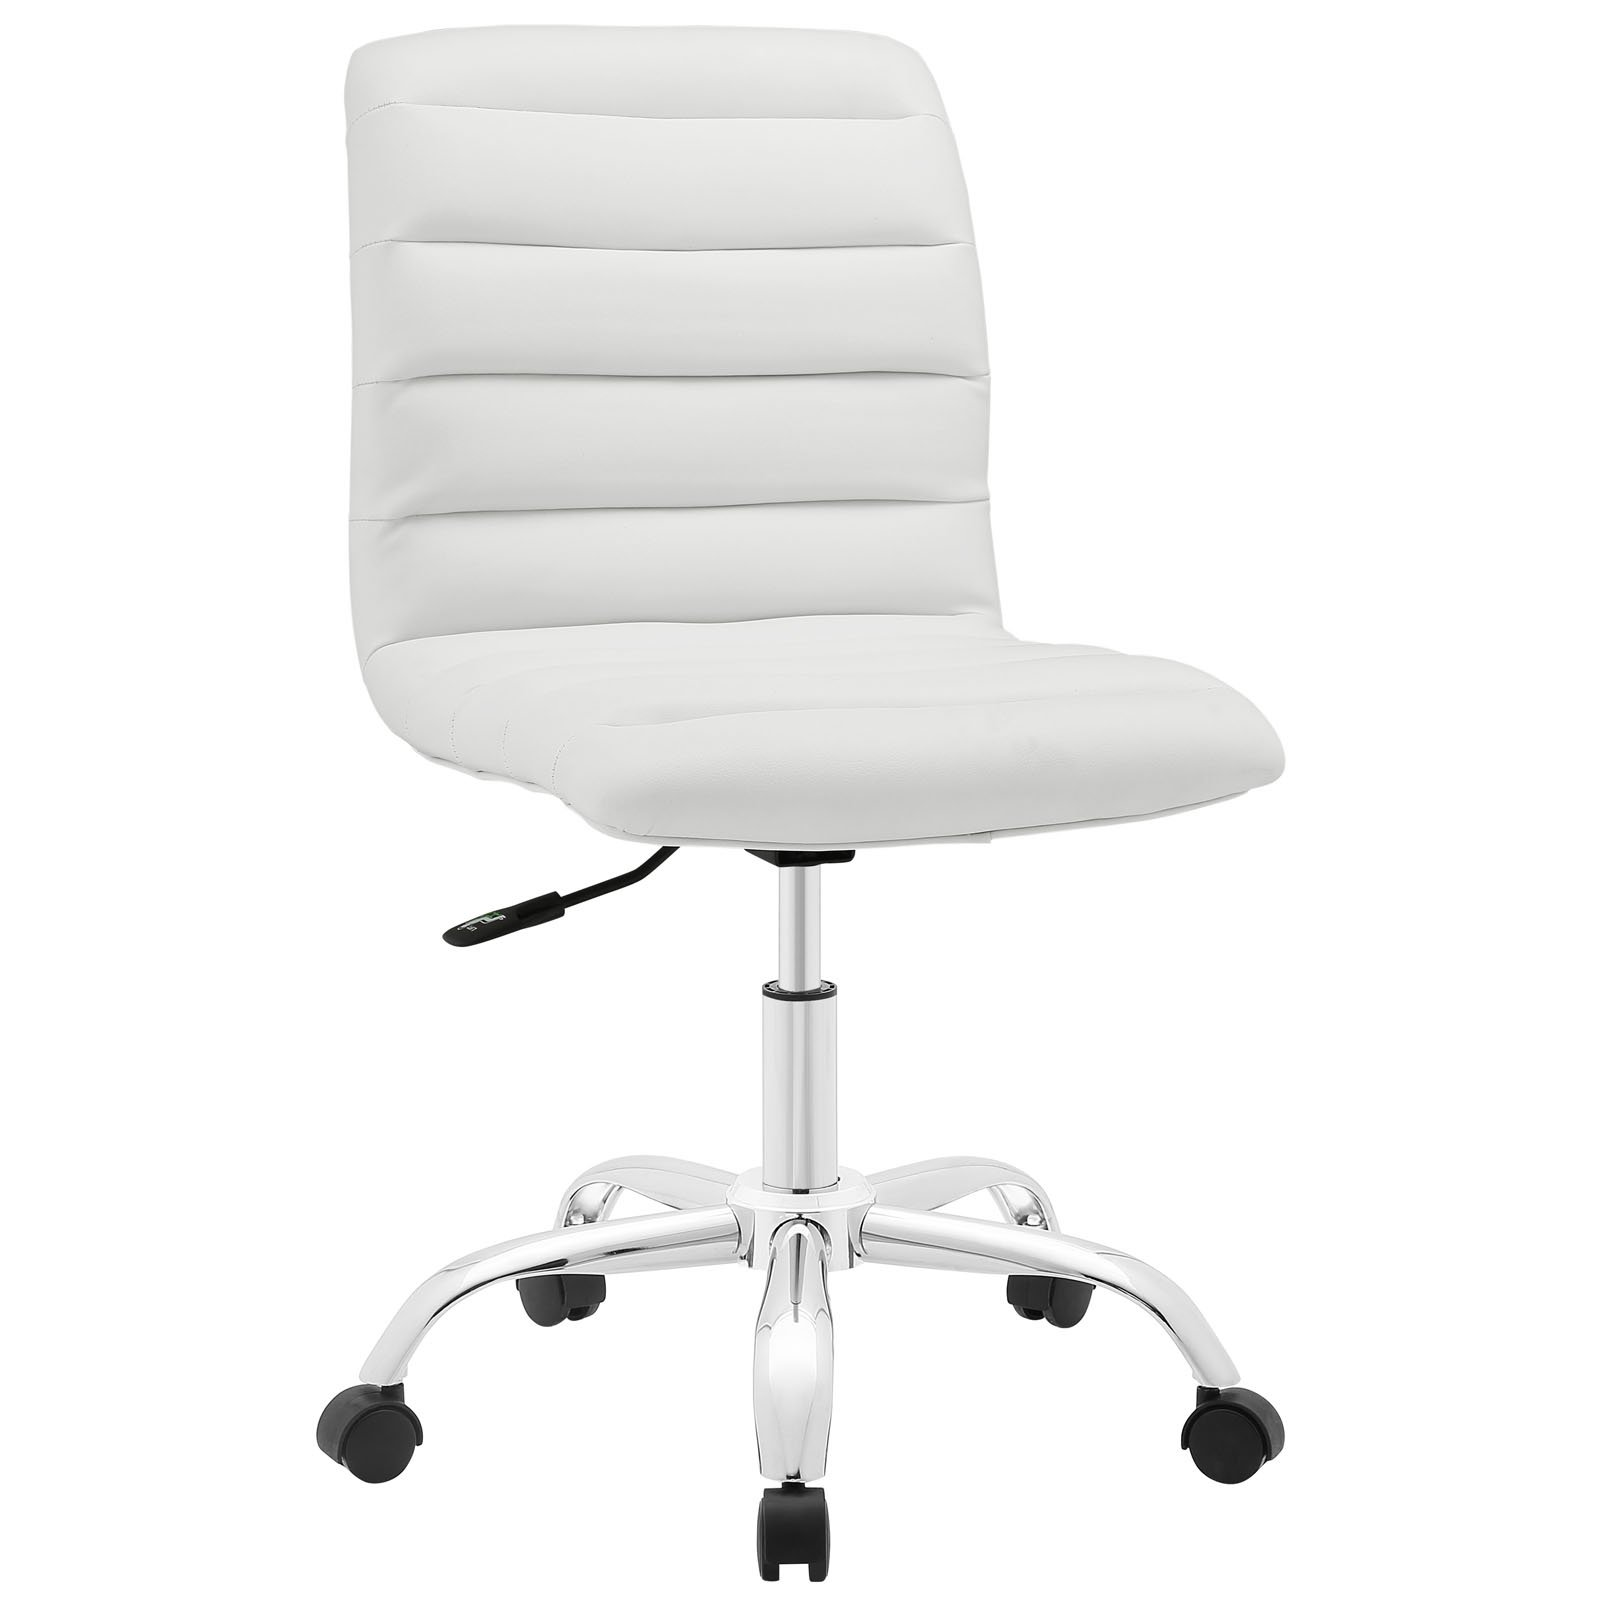 Modway Ripple Ribbed Armless Mid Back Swivel Computer Desk Office Chairr In White by Modway